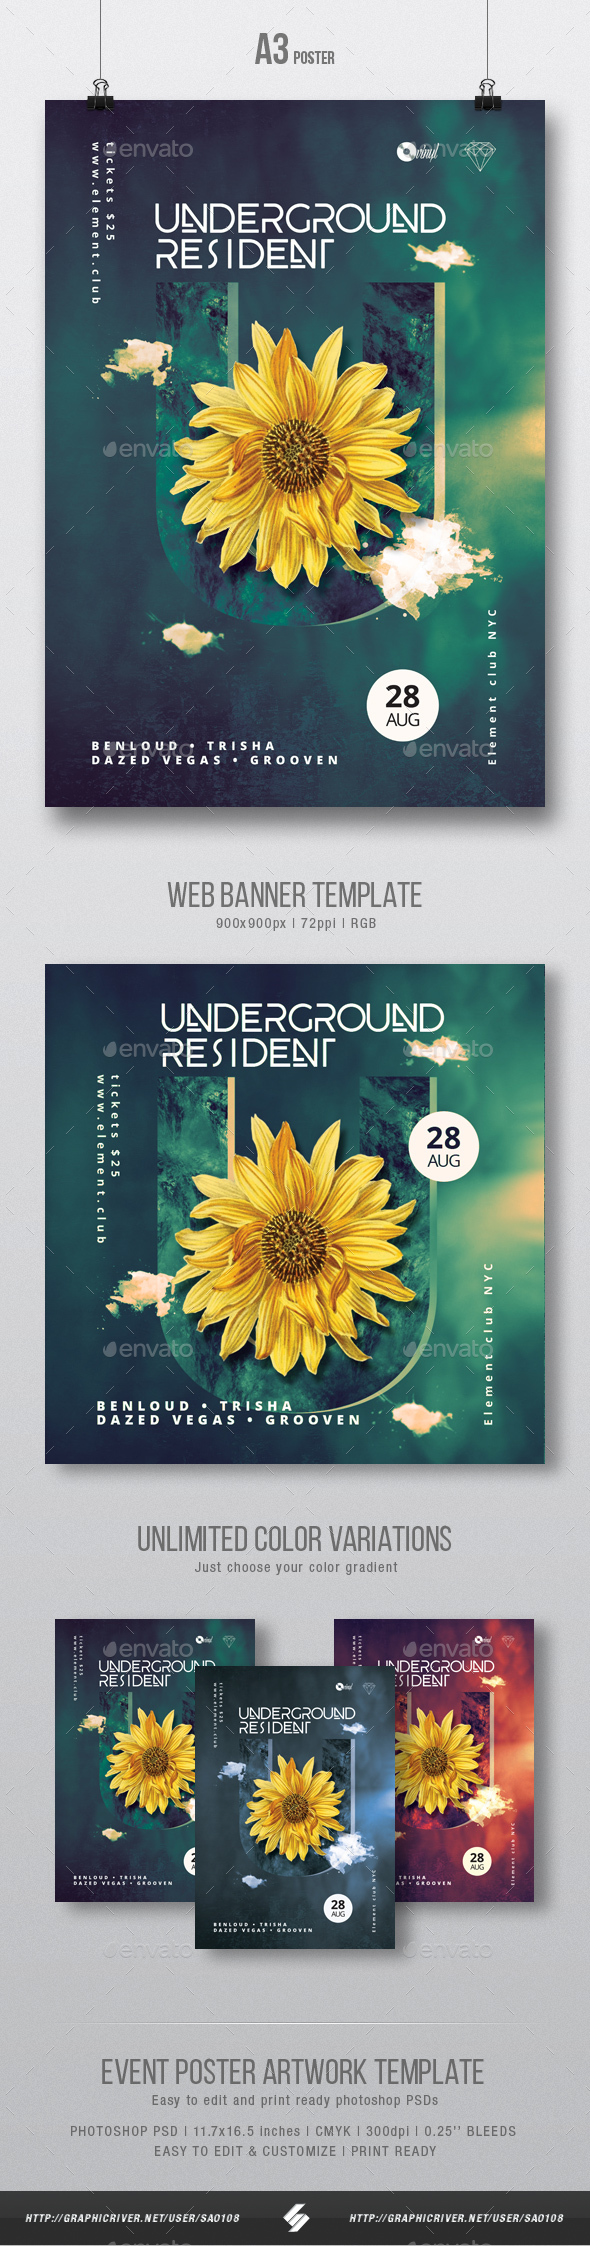 Underground Resident - Progressive Party Flyer / Poster Artwork Template A3 - Clubs & Parties Events